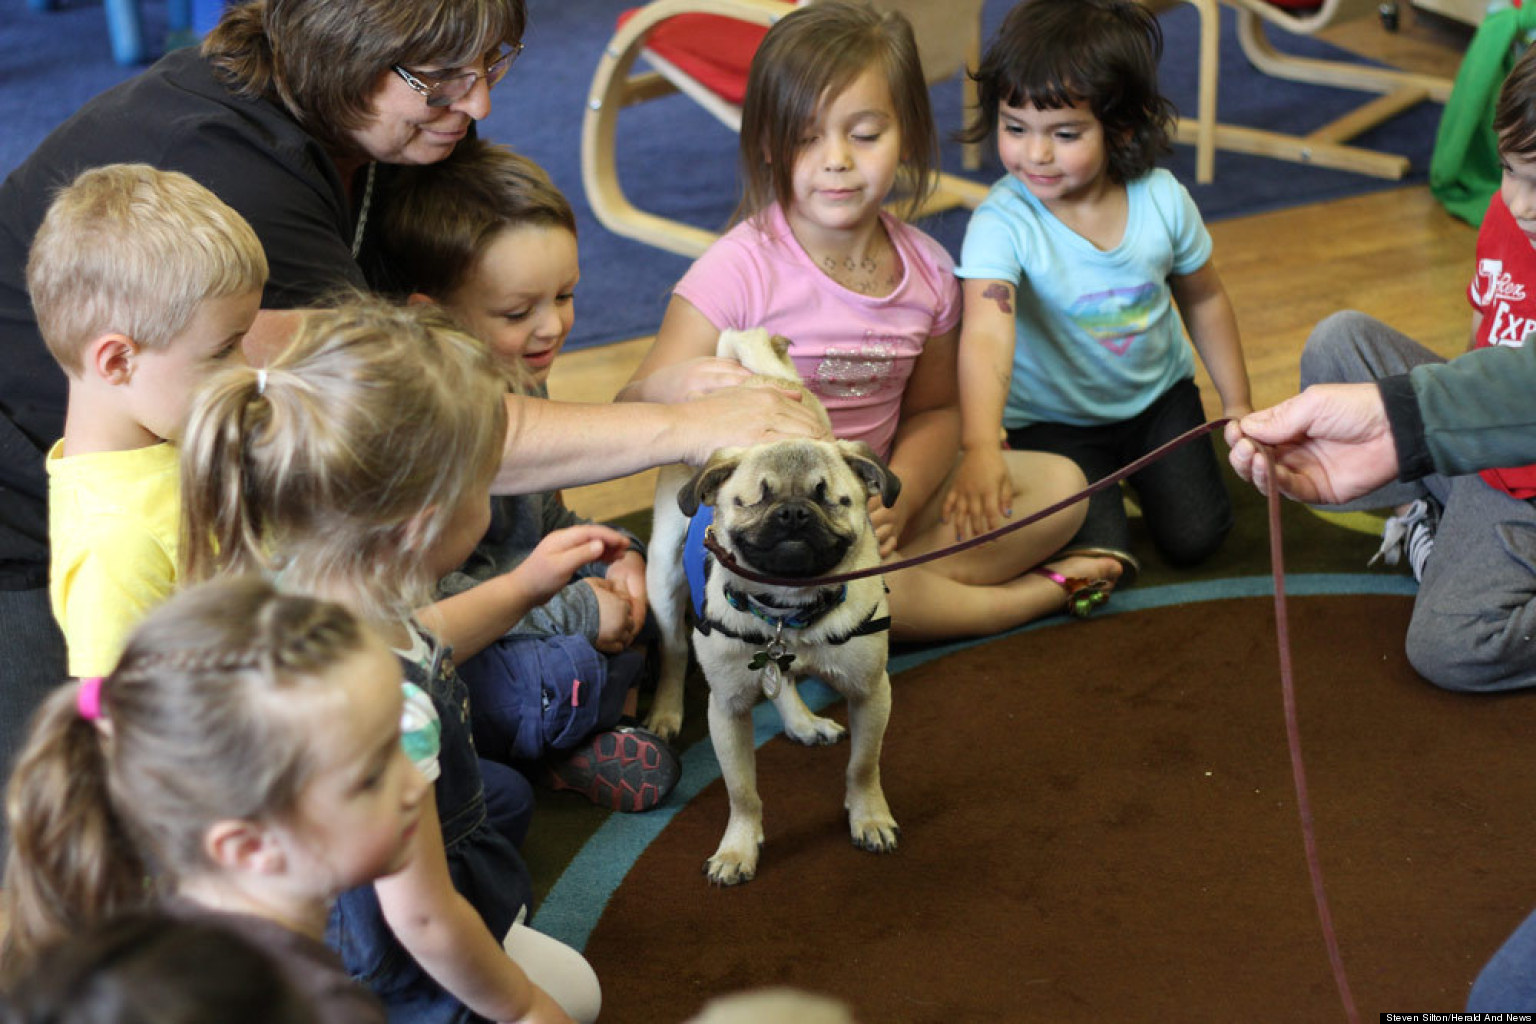 Xander The Blind Pug, The Huffington Post